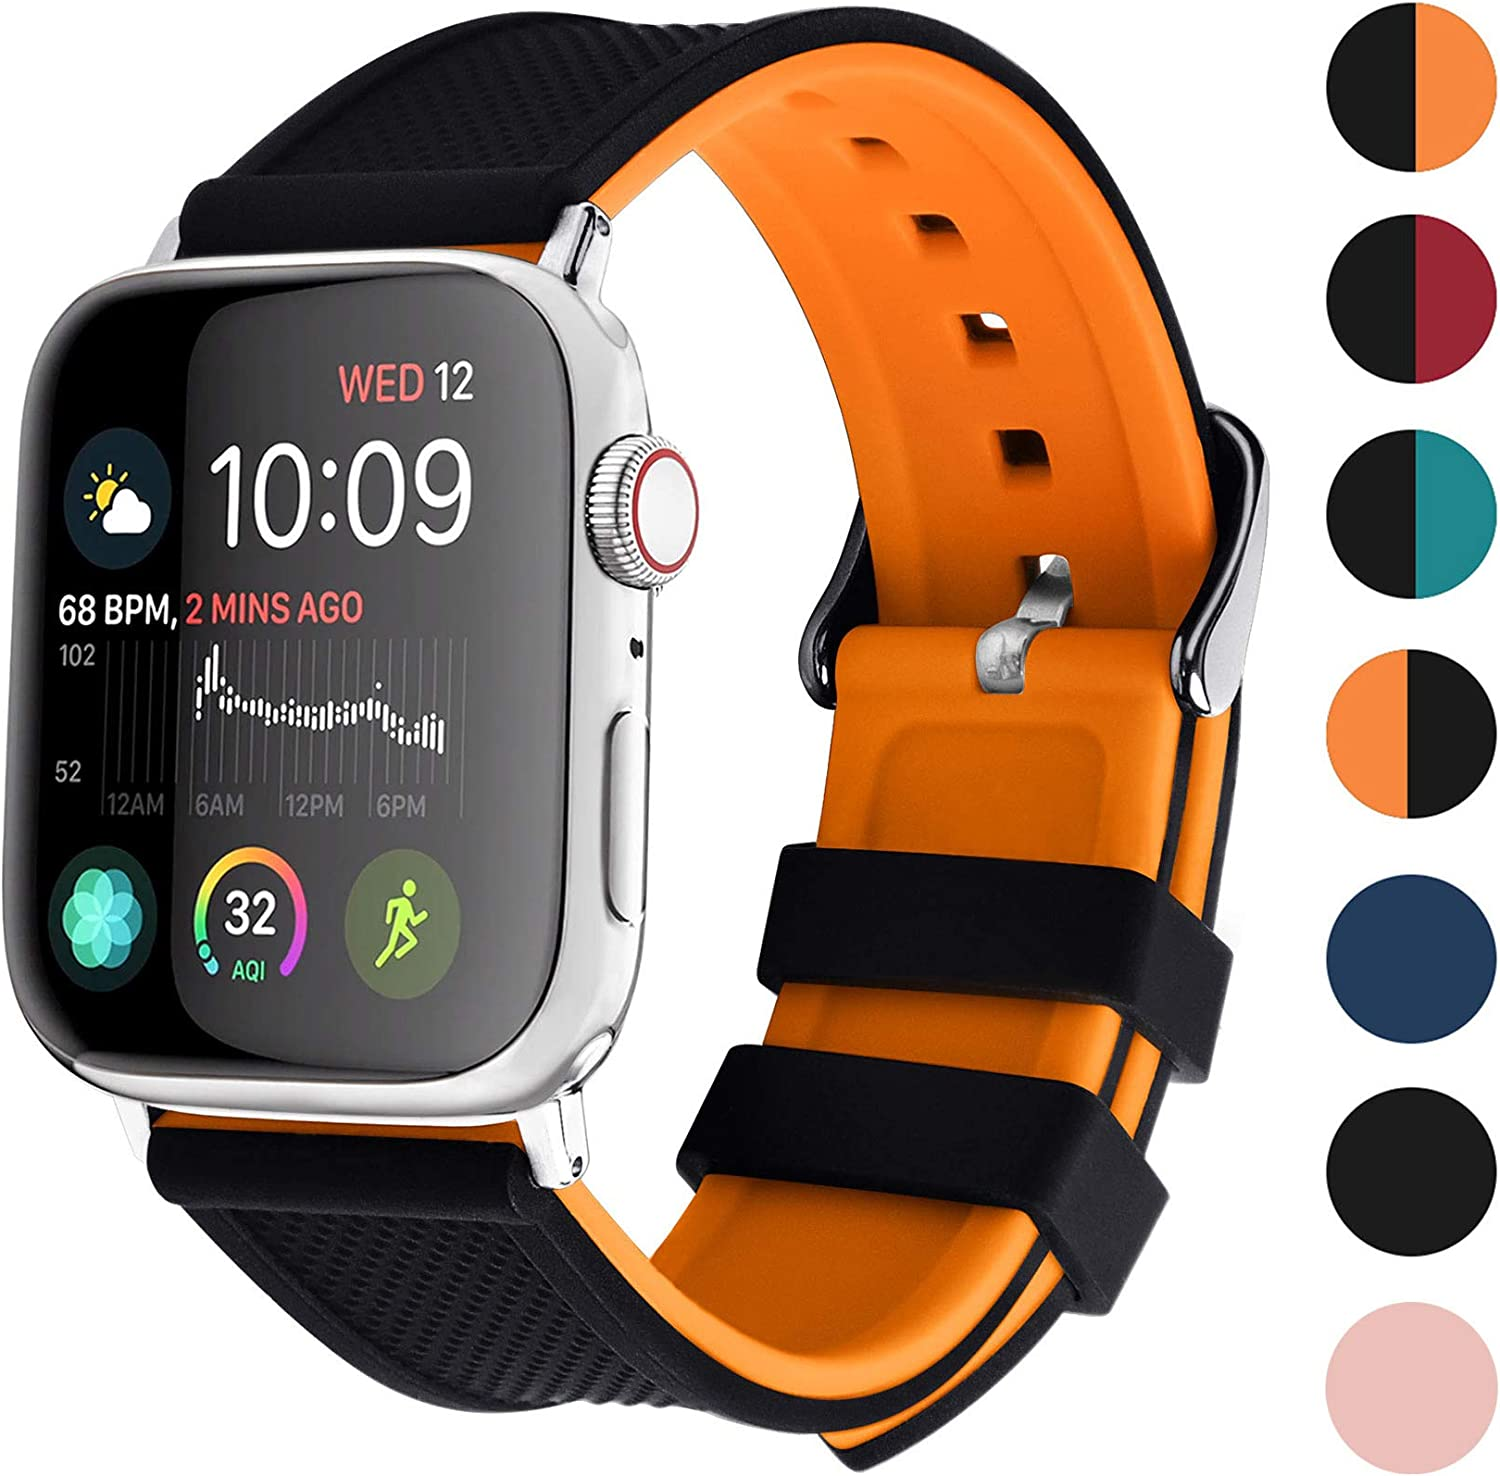 Apple Watch Band Silicone Compatible Apple Watch 42mm 44mm 40mm 38mm, Fullmosa Rainbow Soft Rubber iWatch Band for Apple Watch SE/6/5/4/3/2/1